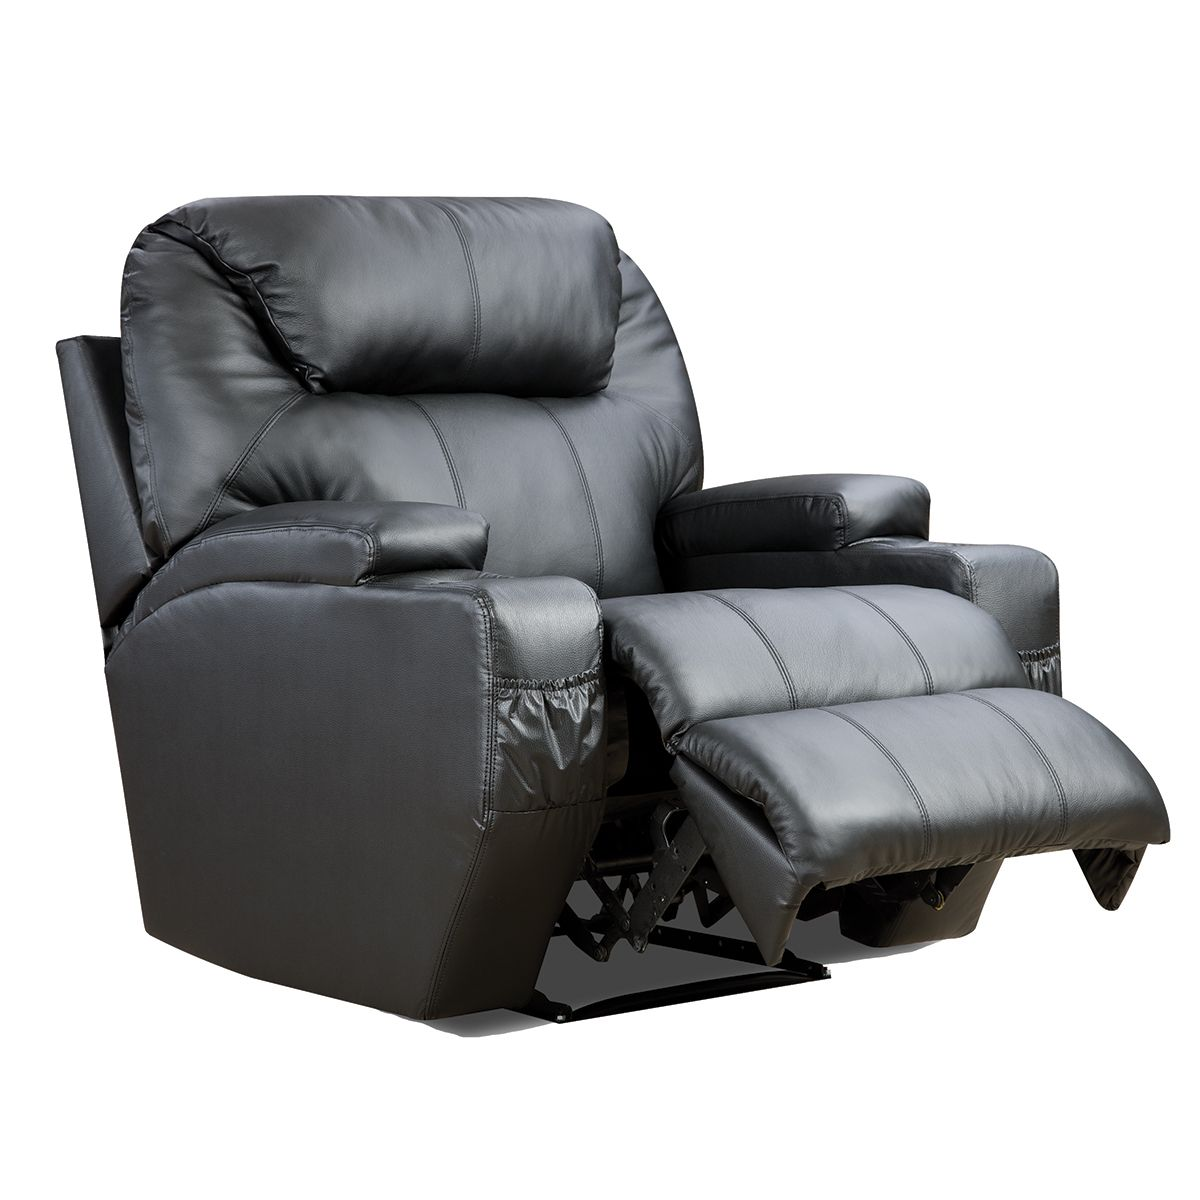 Astounding The Dump Furniture Power Recliner With Usb Port Pabps2019 Chair Design Images Pabps2019Com